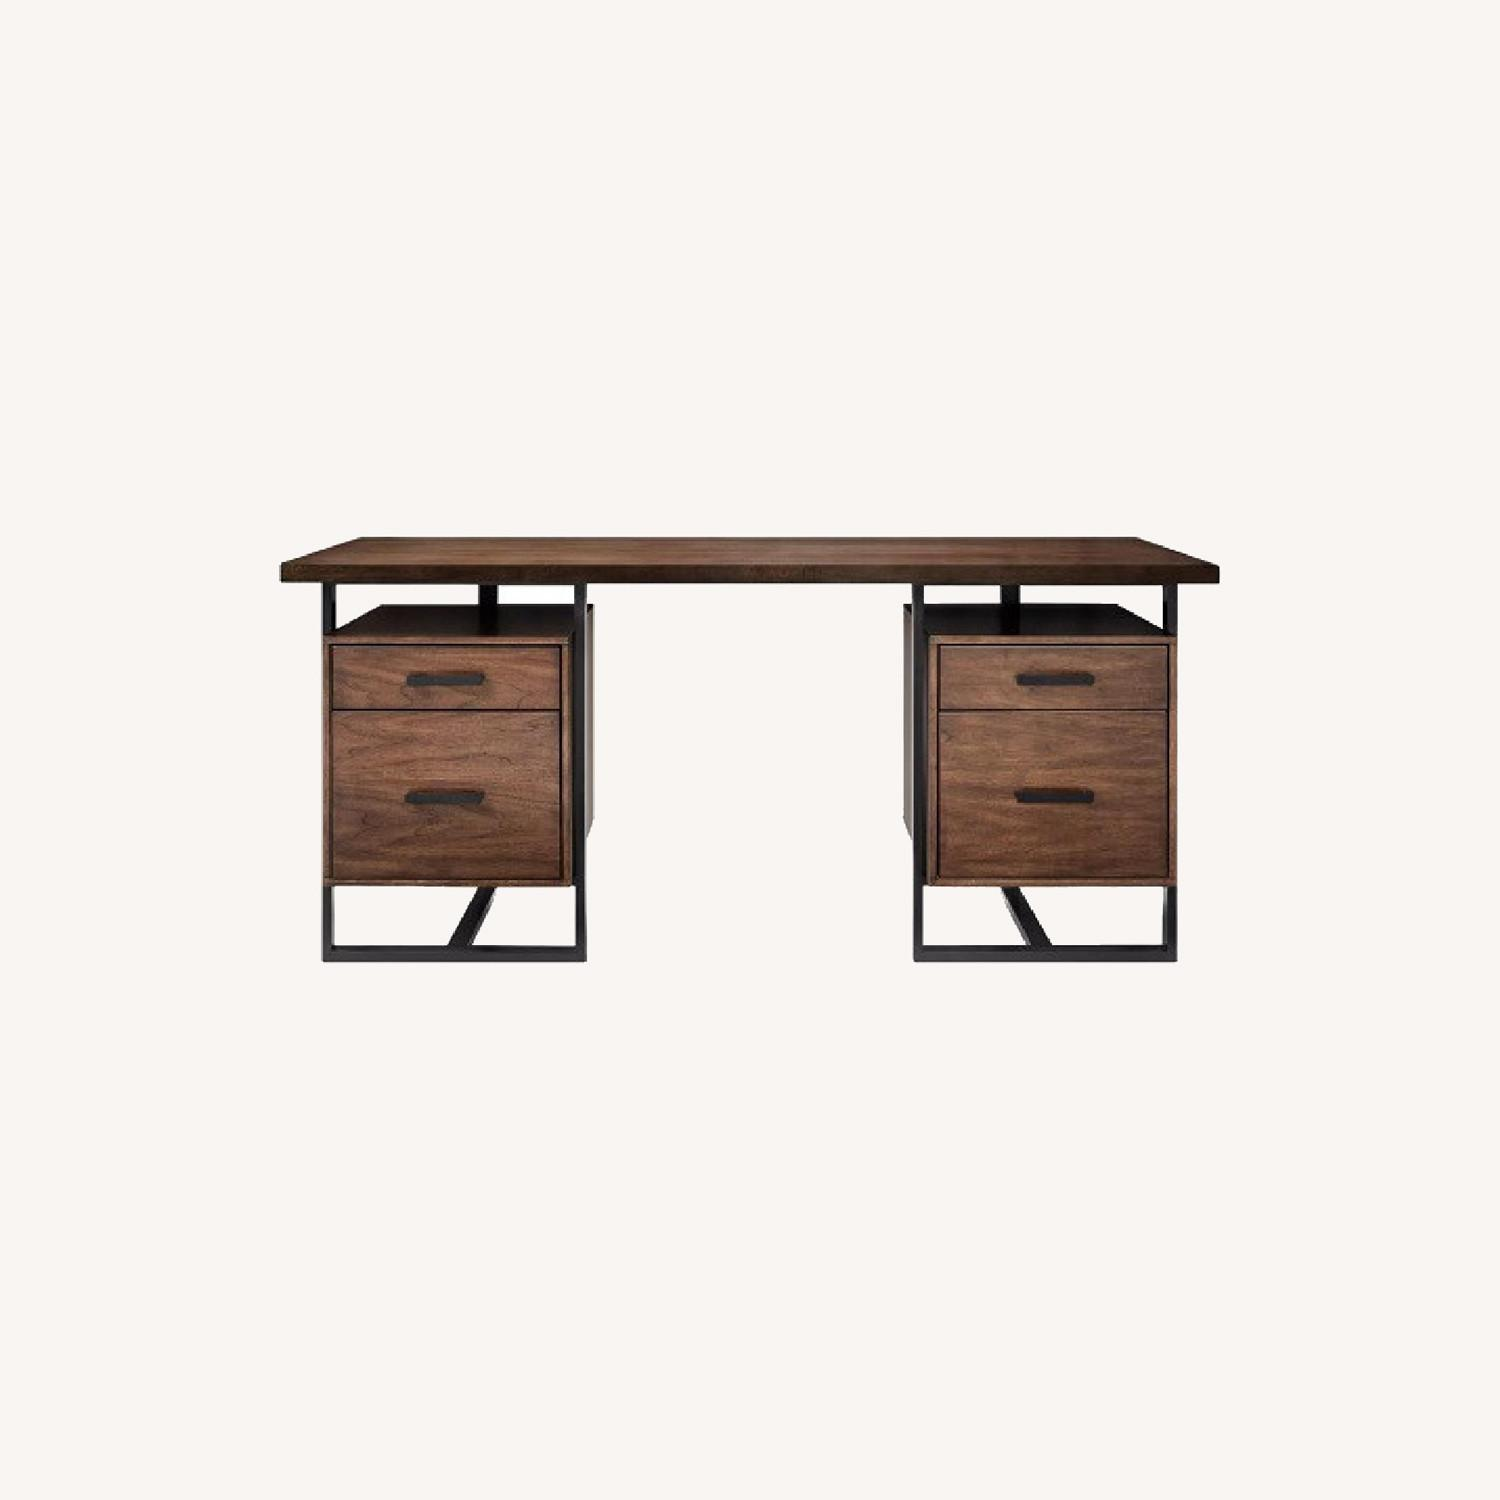 Raymour & Flanigan Chester Writing Desk 66 Wide 4 Drawers - image-0